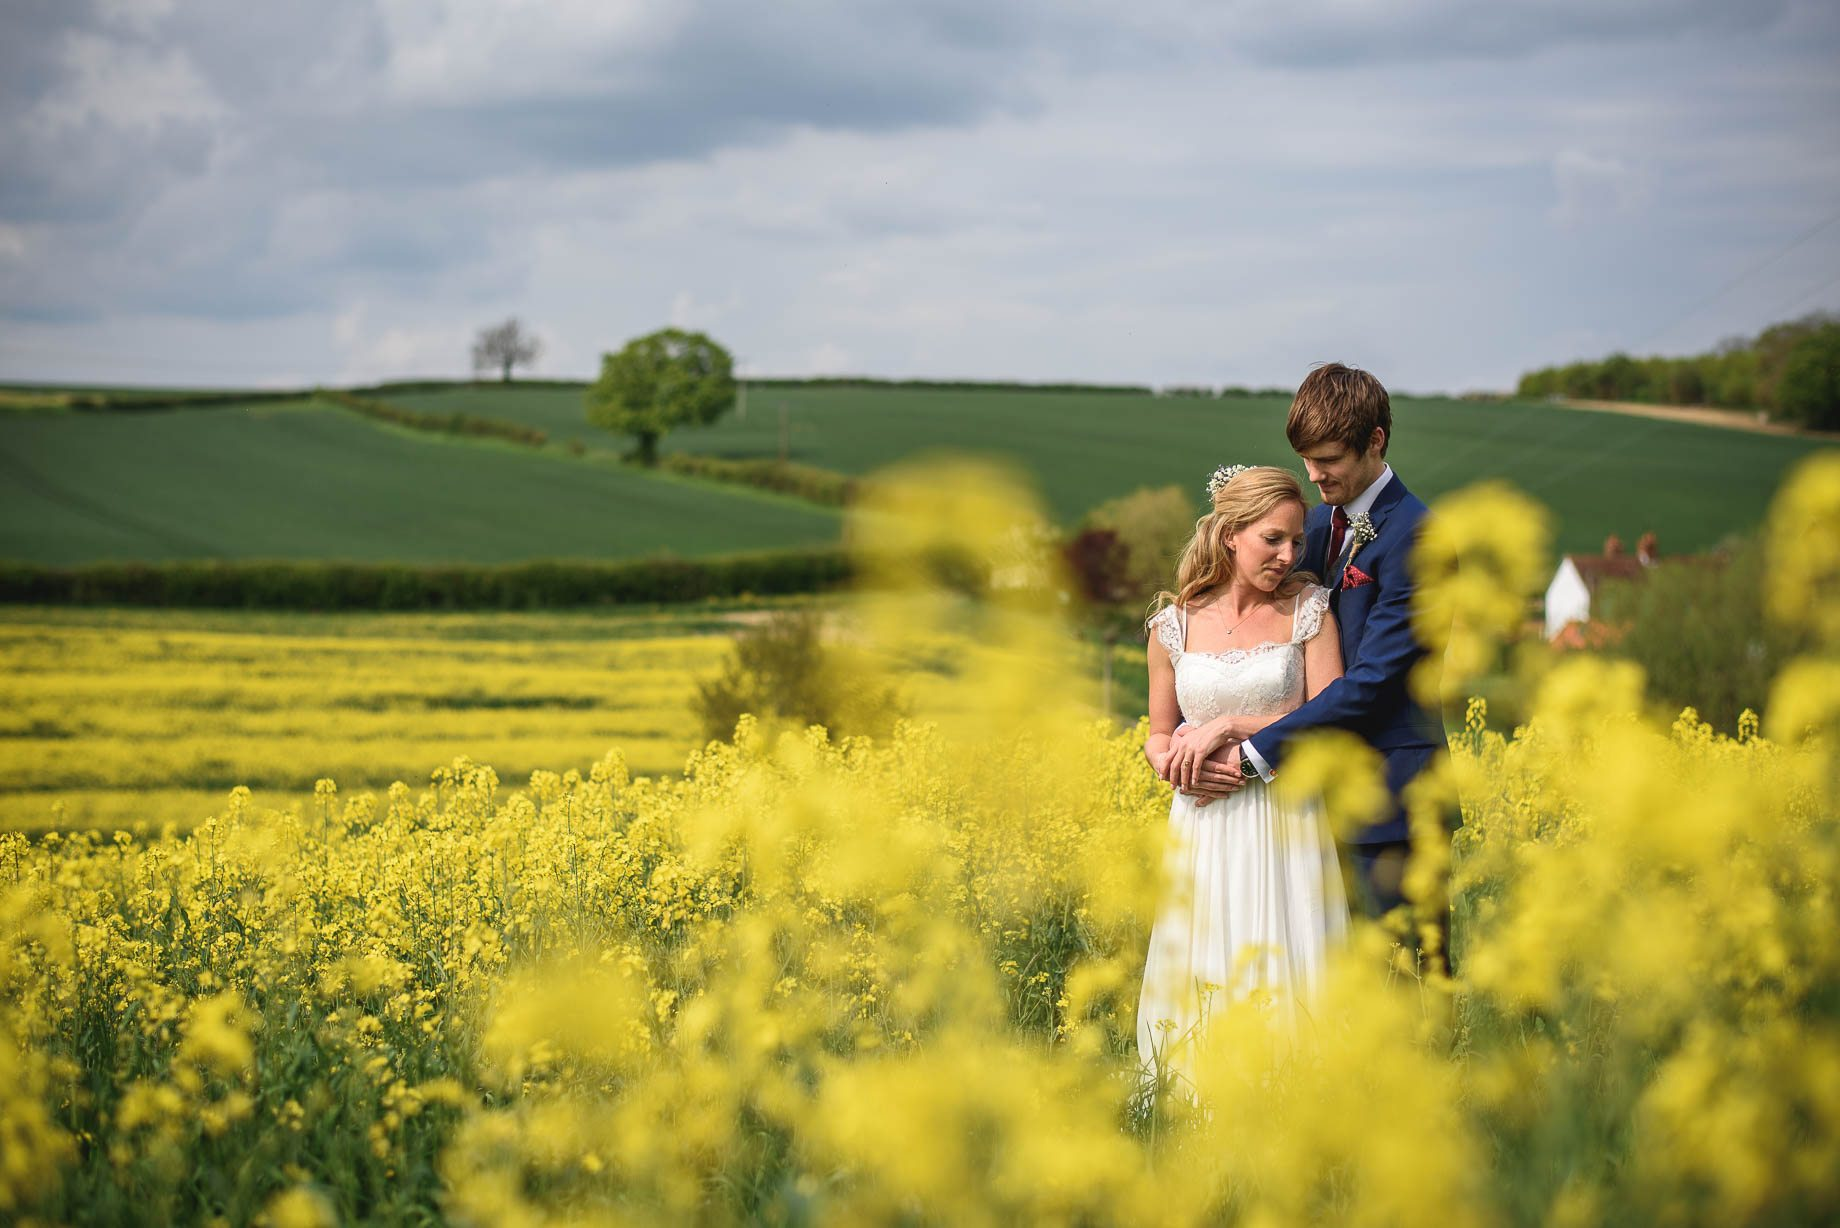 Bury Court Barn wedding photography by Guy Collier - Heather and Pat (104 of 170)